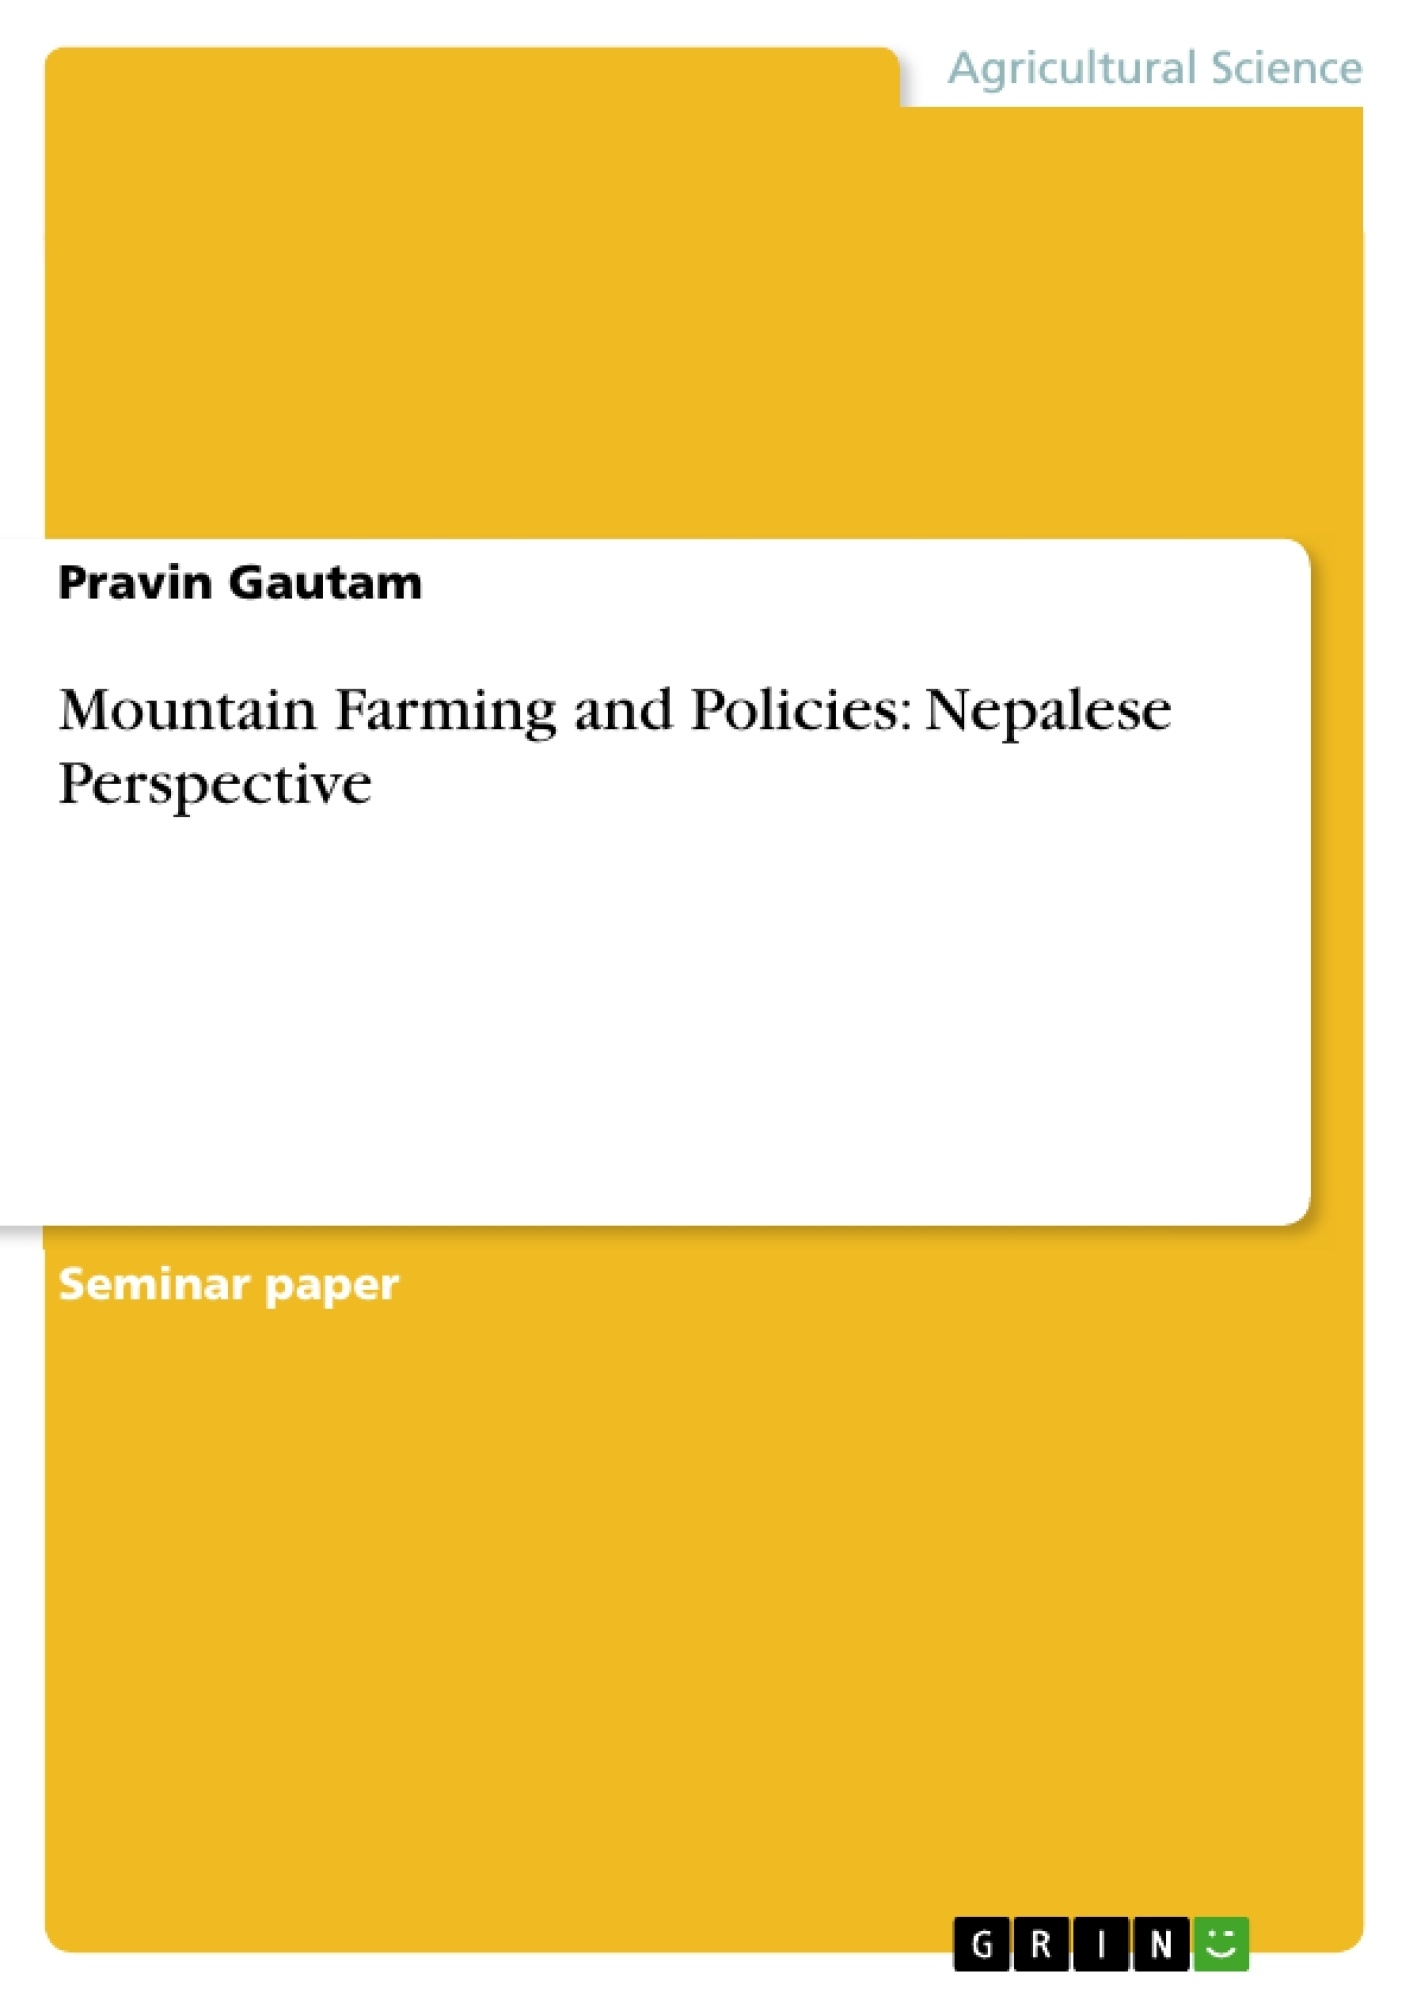 Title: Mountain Farming and Policies: Nepalese Perspective